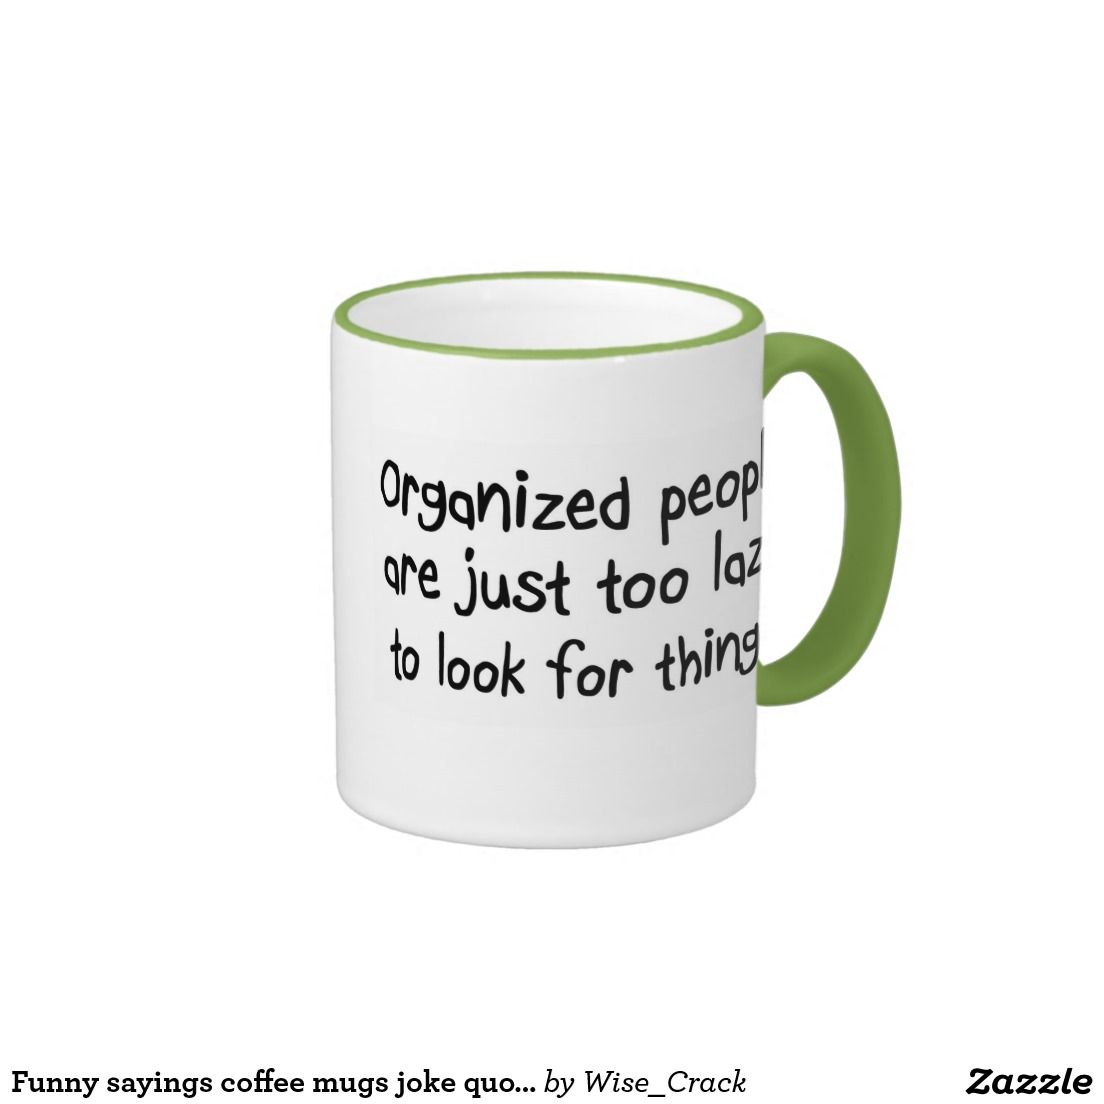 Funny sayings coffee mugs joke quote office ts